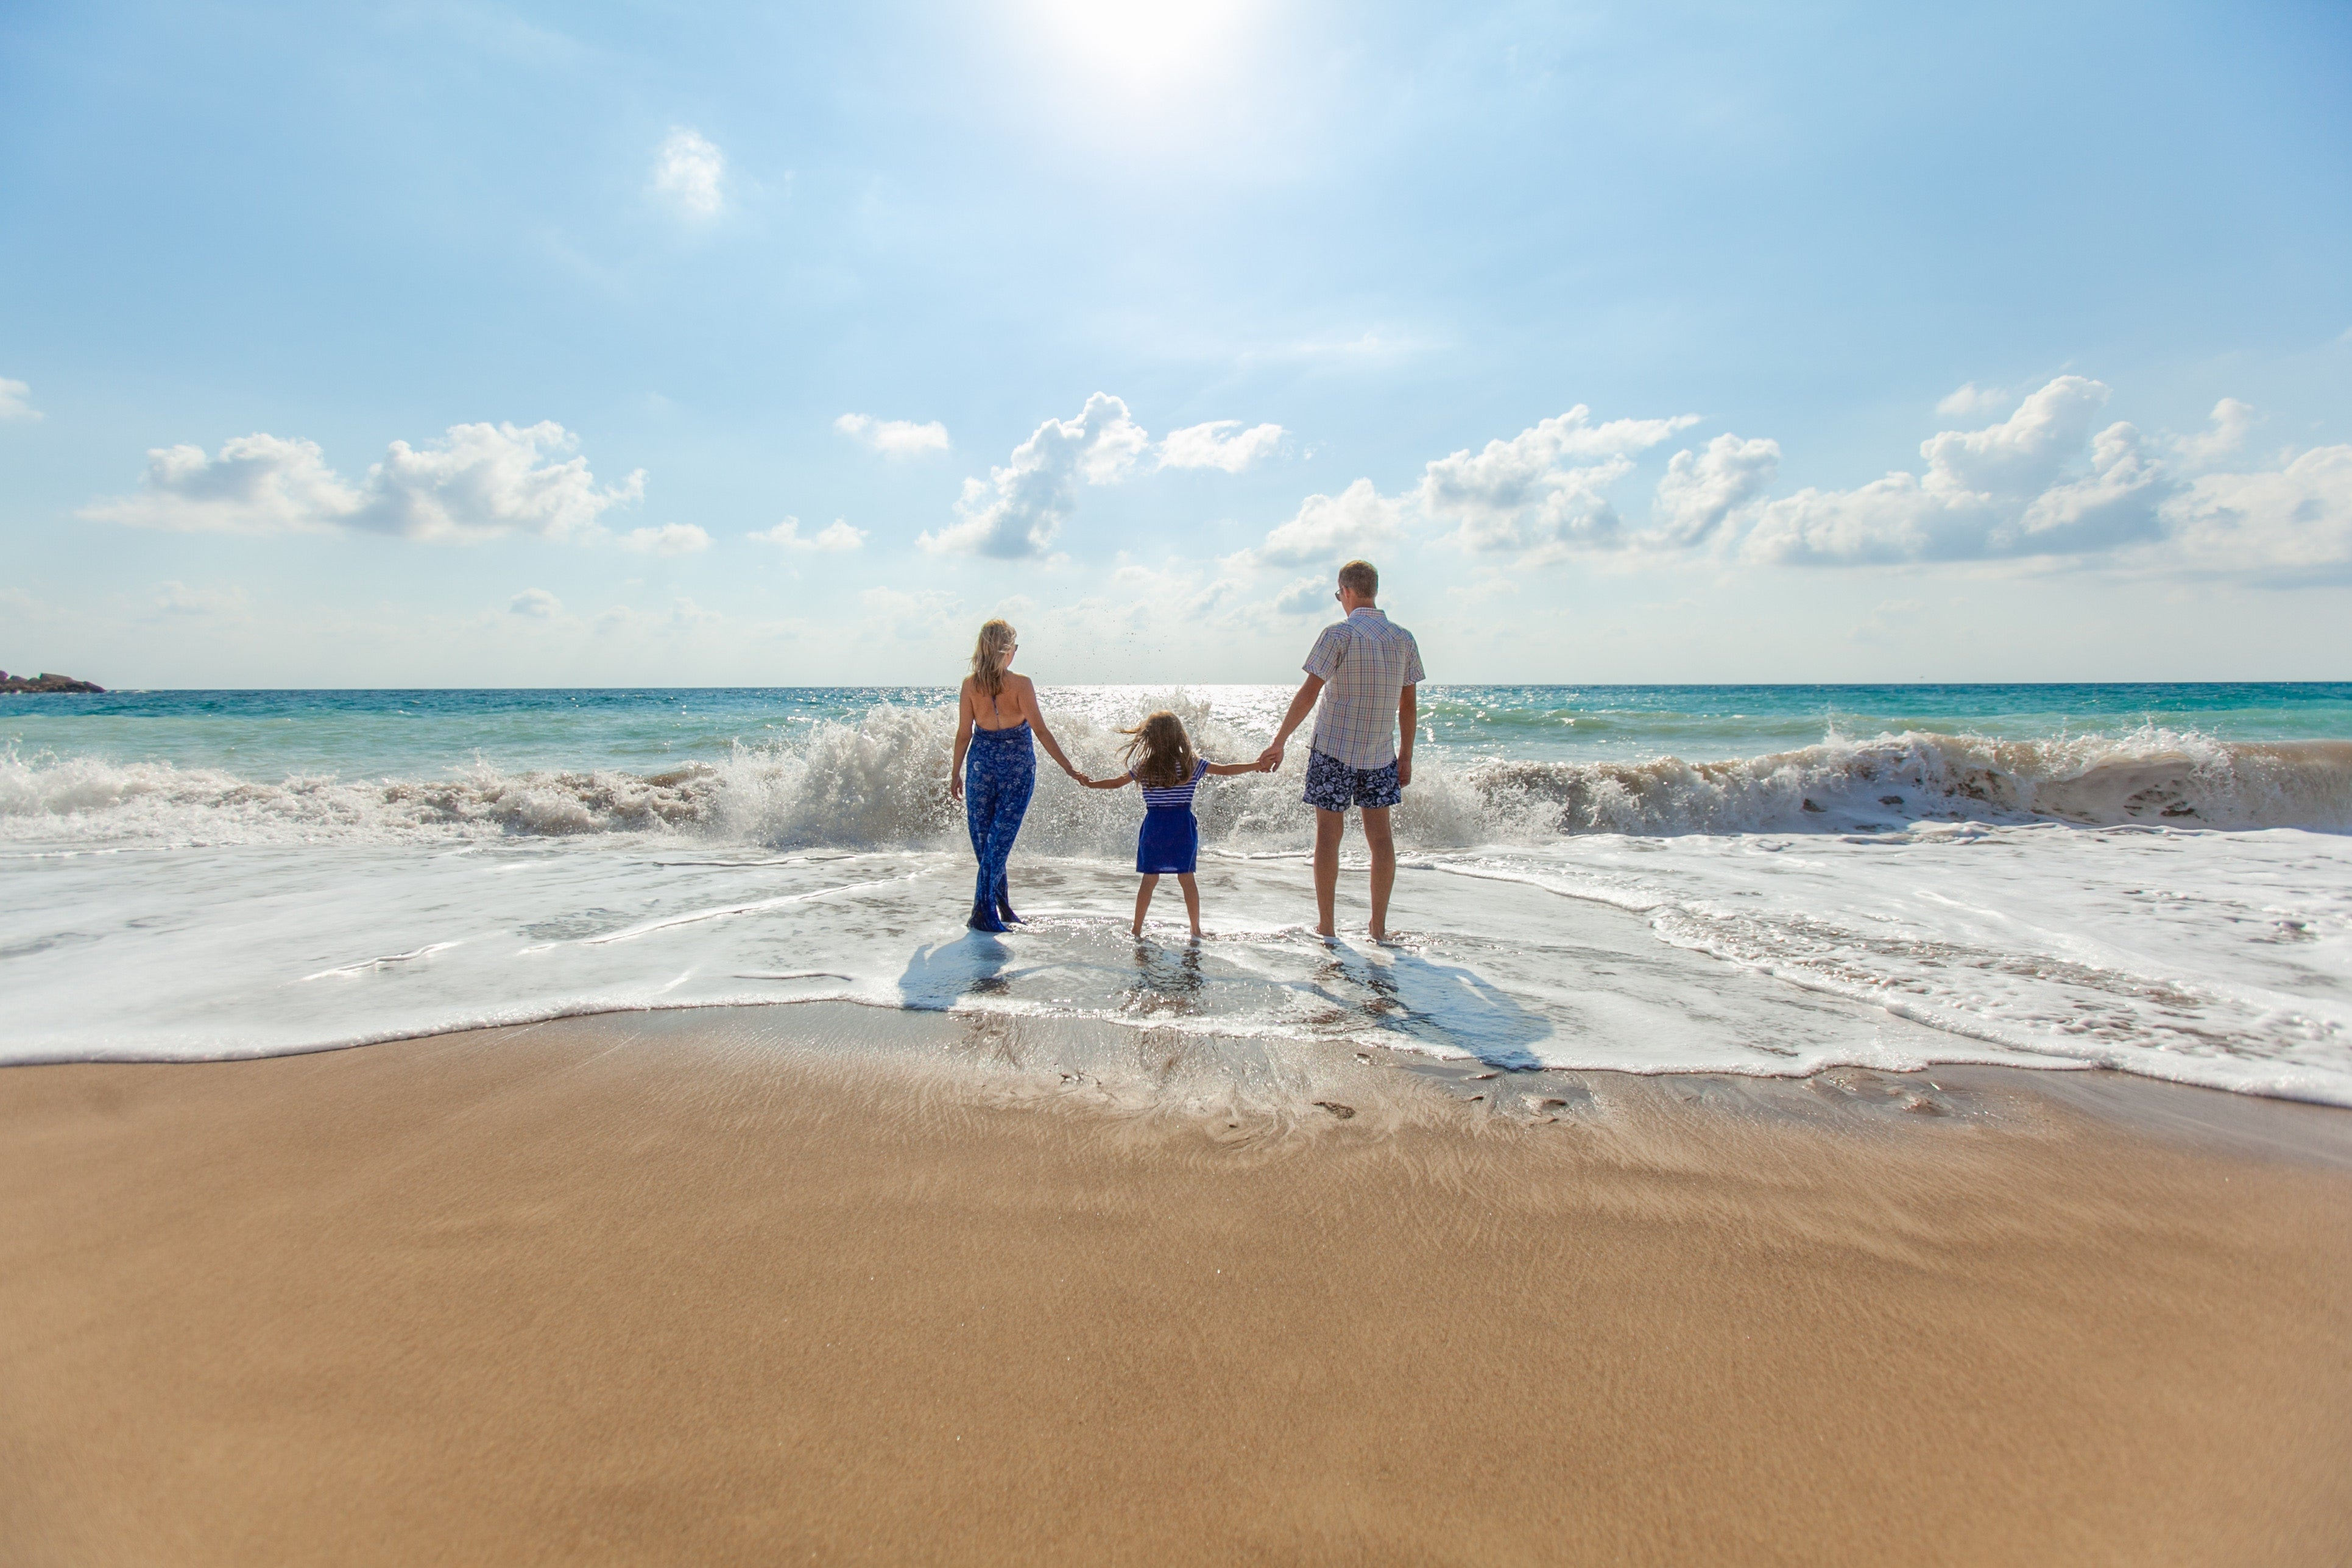 Family of three enjoying the sun, sand and waves